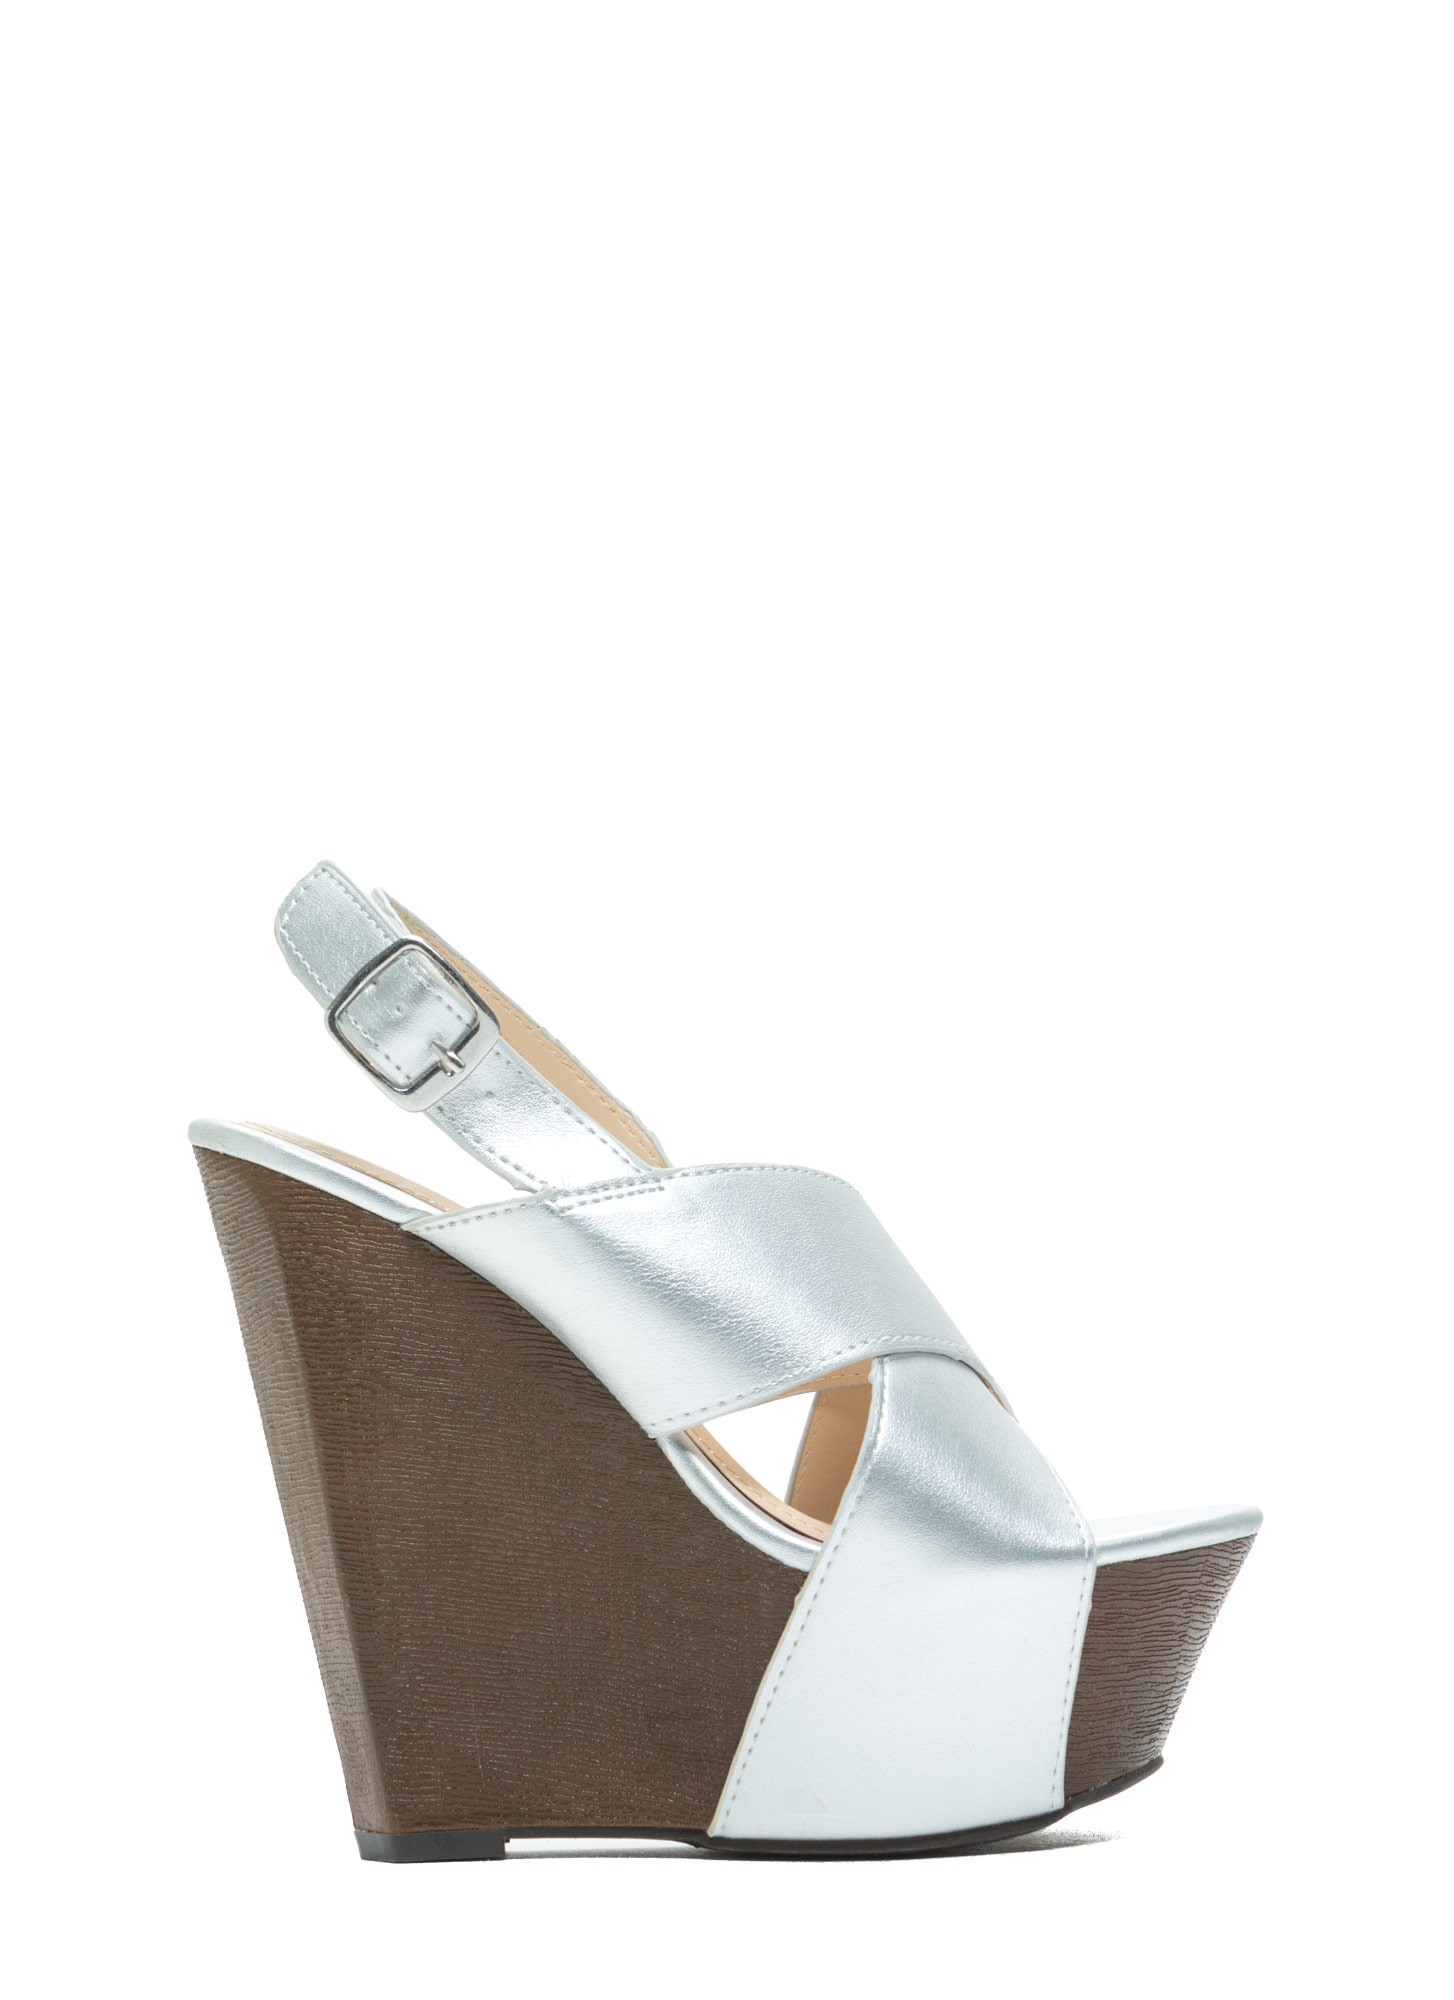 Buried Treasure Wedges SILVER